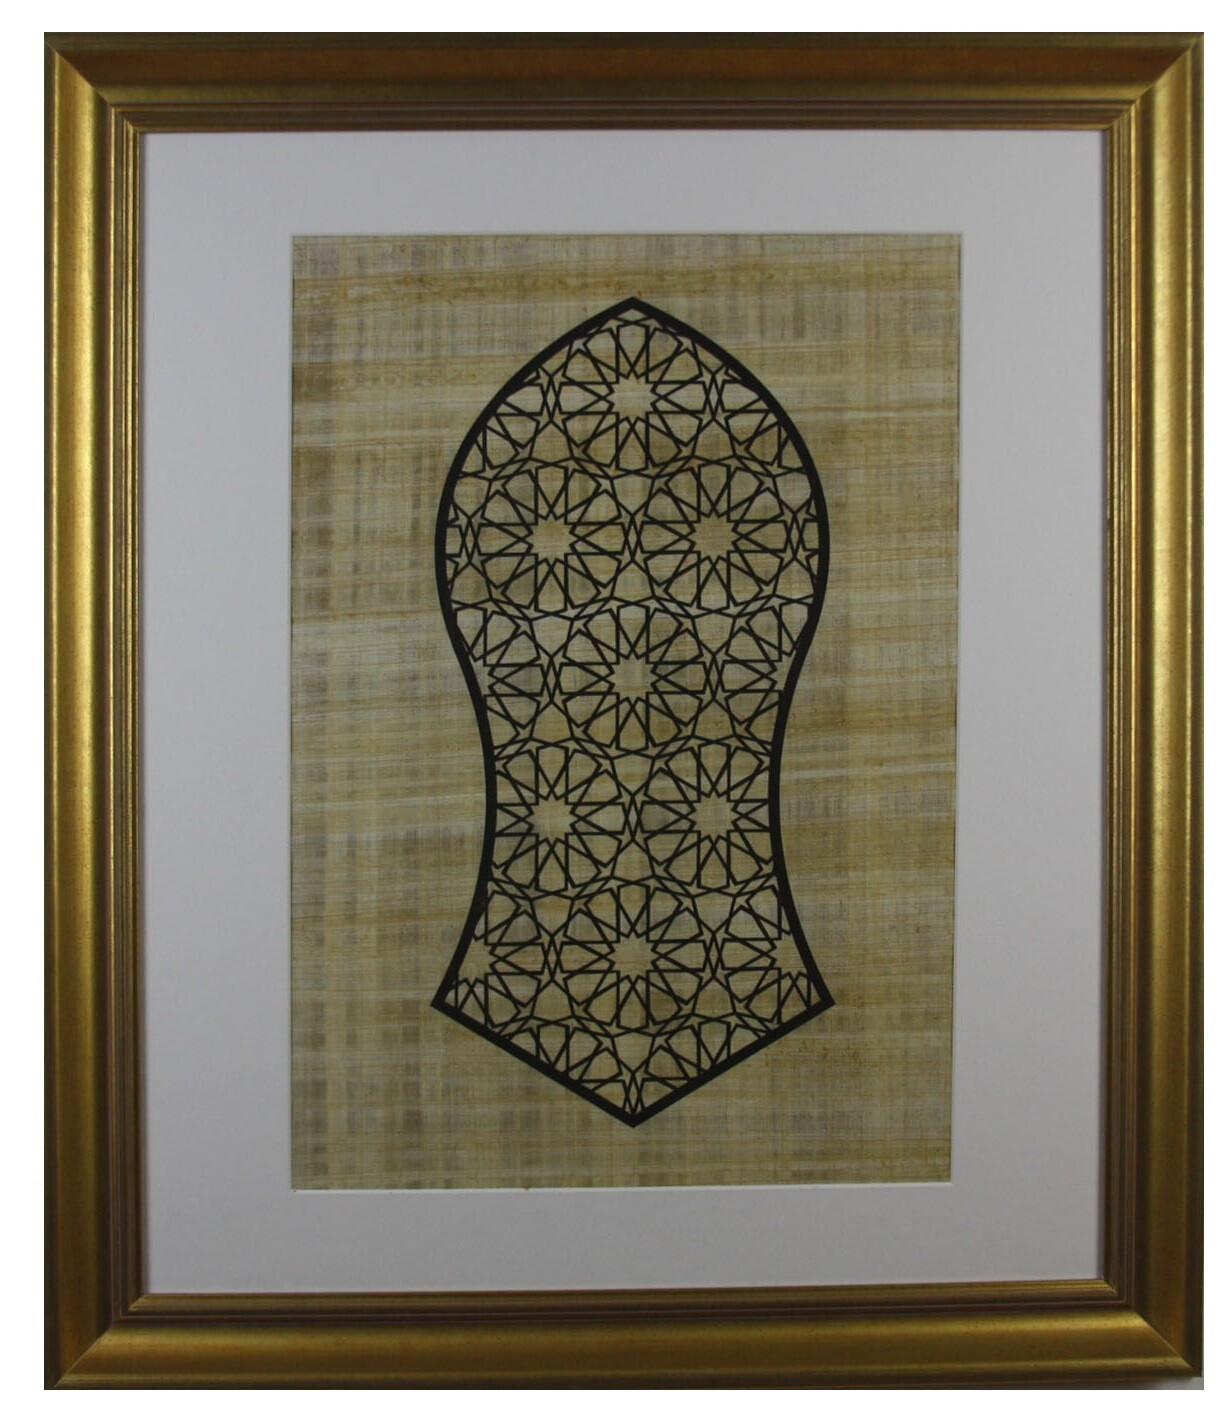 Blessed Sandal (Nalayn) Geometric Design on Papyrus In Gold Frame